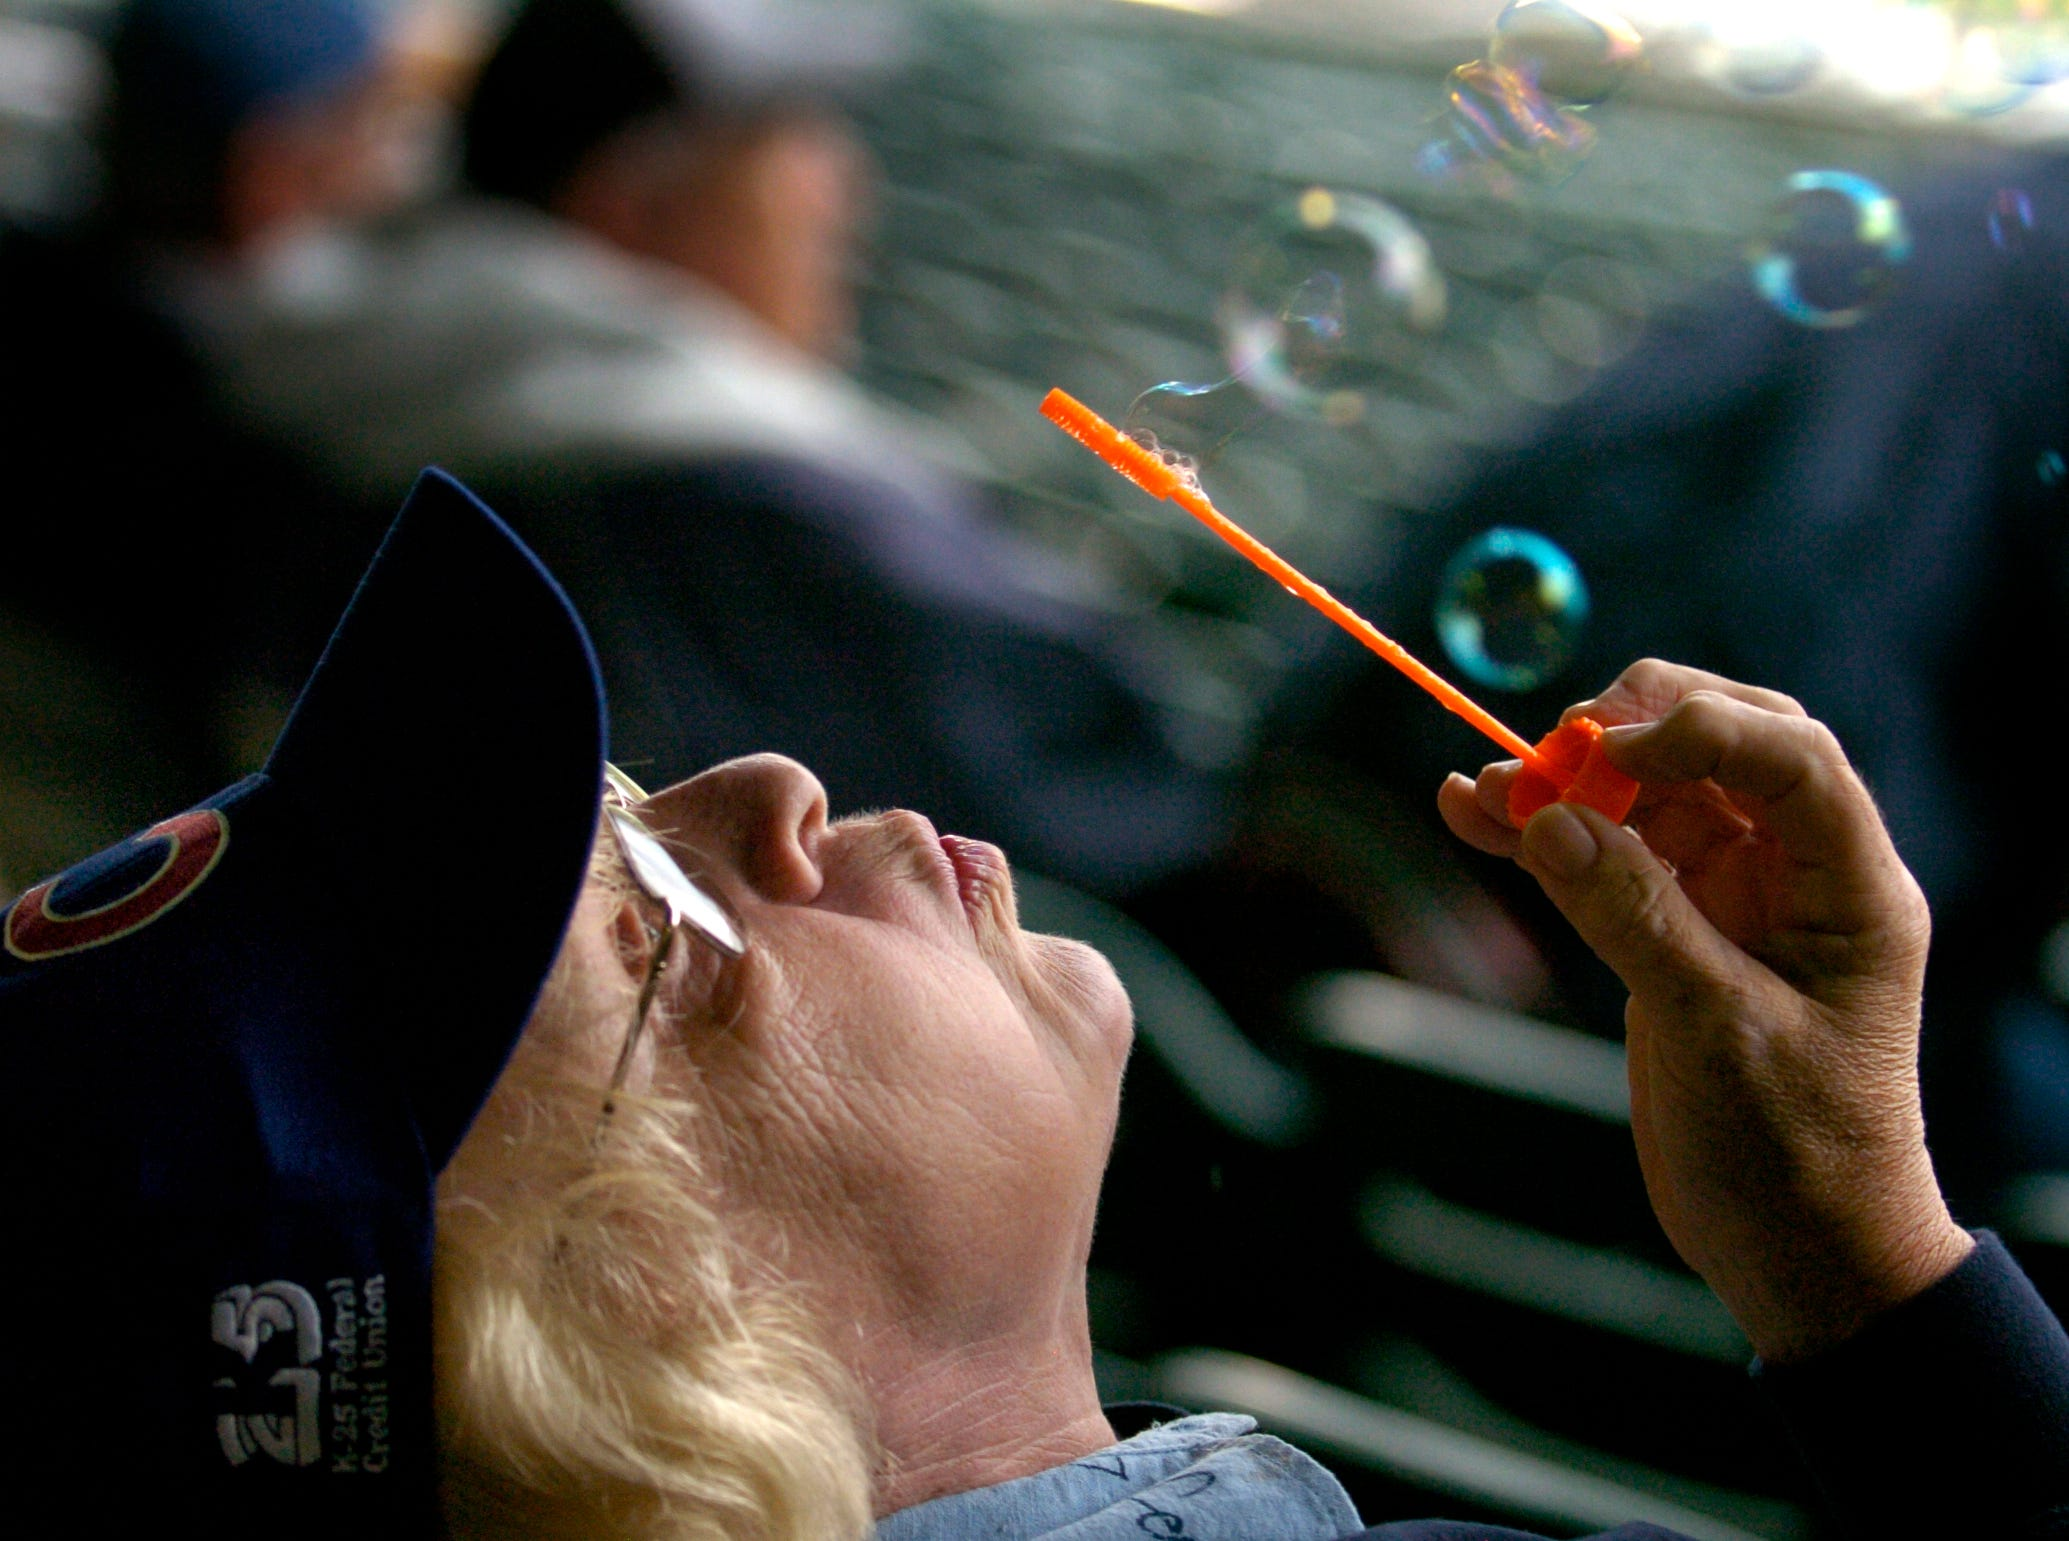 """Dorothy Gilbert blows bubbles during a rain delay at the Tennessee Smokies home opener Wednesday in Sevierville. The Smokies game against the Huntsville Stars was postponed and will be made up as part of a double-header on Thursday night. Gilbert was philosophical about the weather. """"You have to bring your own fun,"""" she said."""